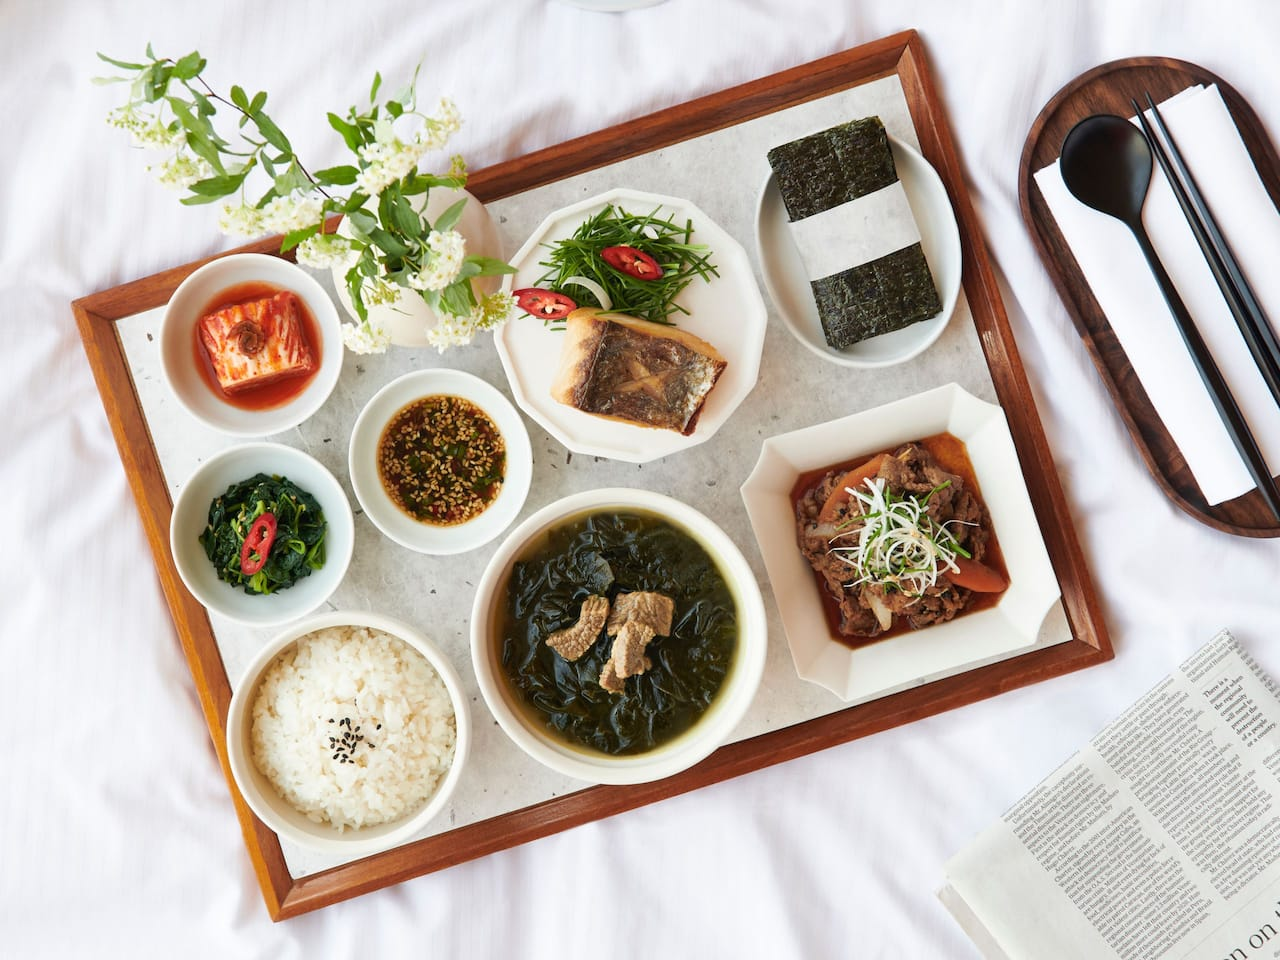 24Hrs Room Service: Korean Cuisine, Italian Dishes, Drinks & Teas